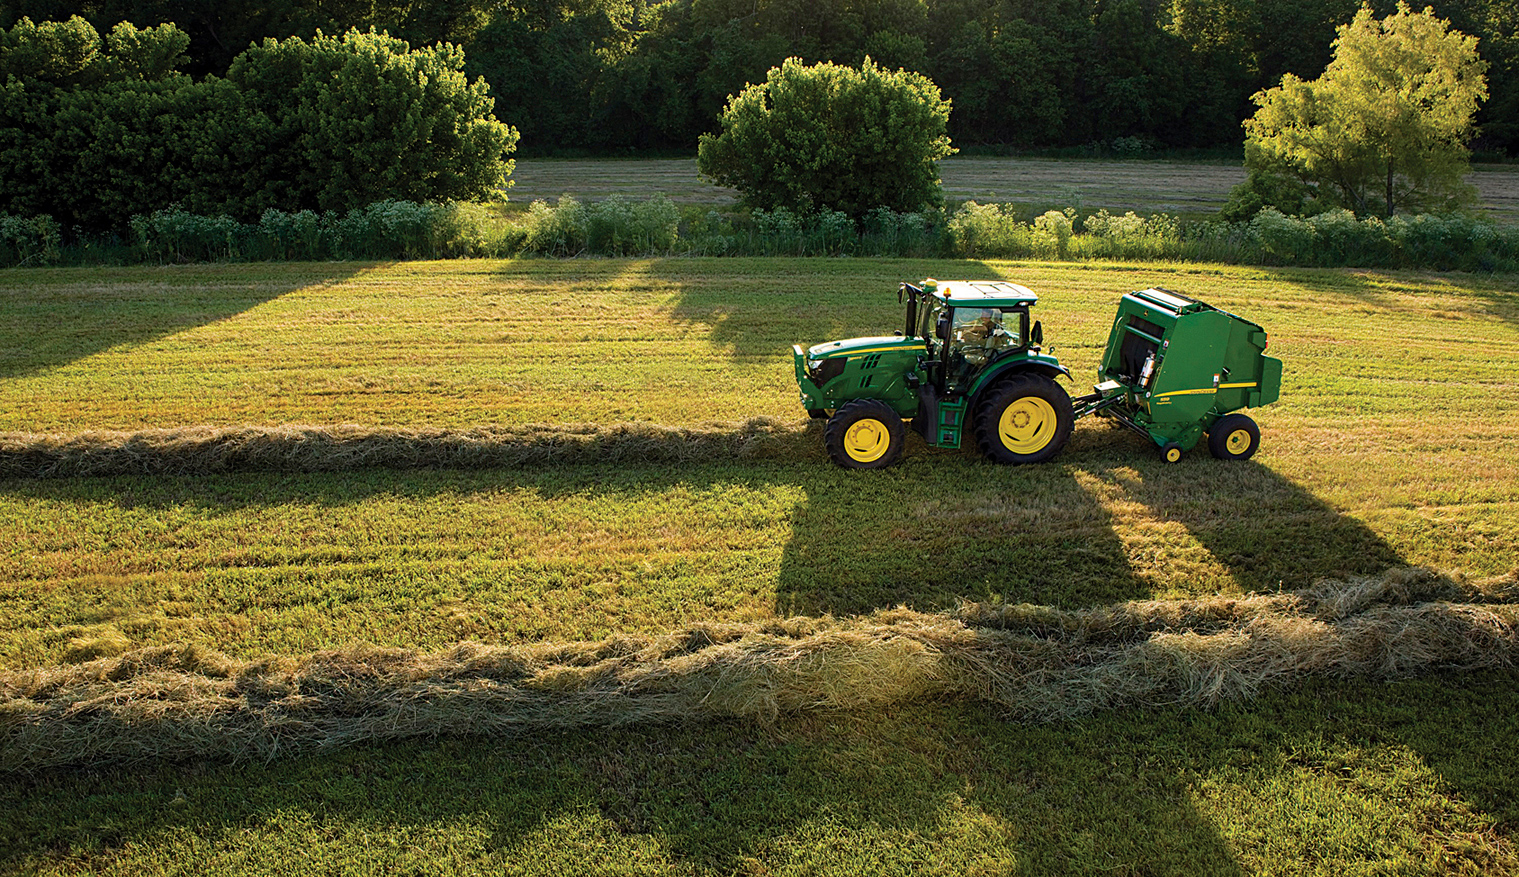 Image Gallery: 20 Hay Baling Photos to get you Summer-Ready